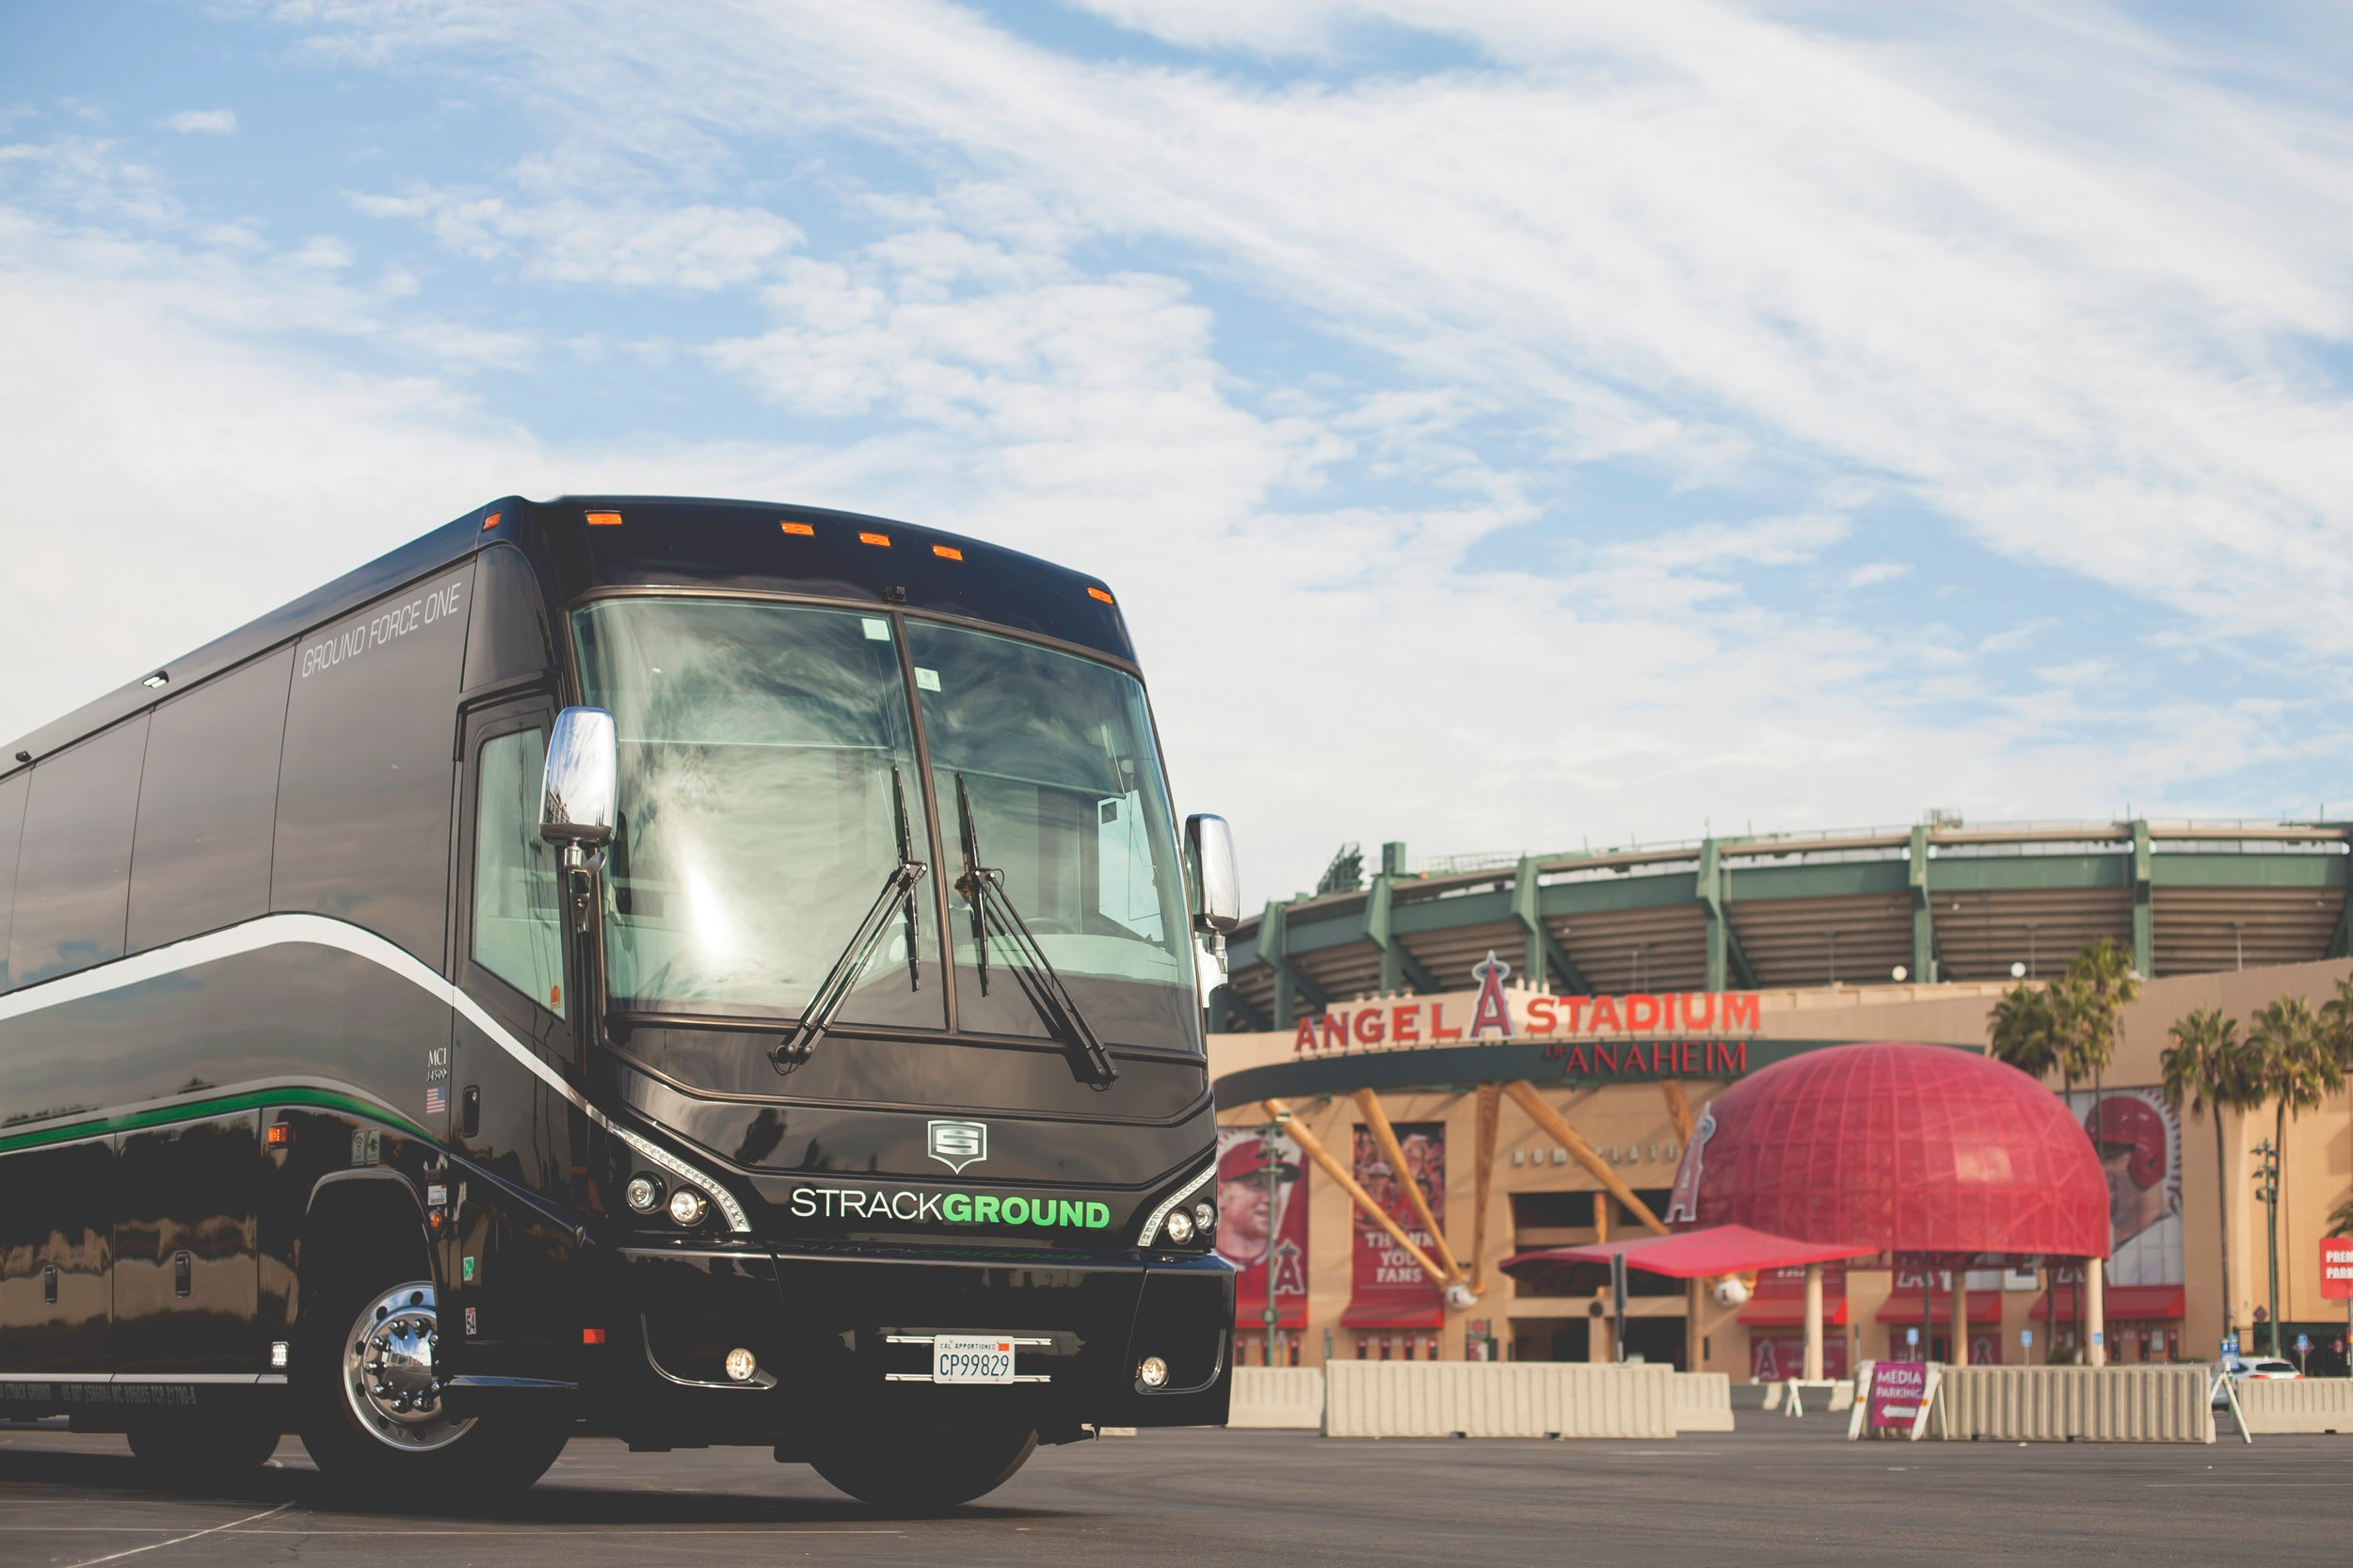 Motorcoach 56 - WiFi and DVD monitors. USB and HDMI ports. 110V/USB charging at each seat with overhead storage. Lavatory on board. Wood floors. Reclining captains chairs. Wireless PA system. Seating up to 56 passengers. Dedicated underbelly luggage for 56 passengers.